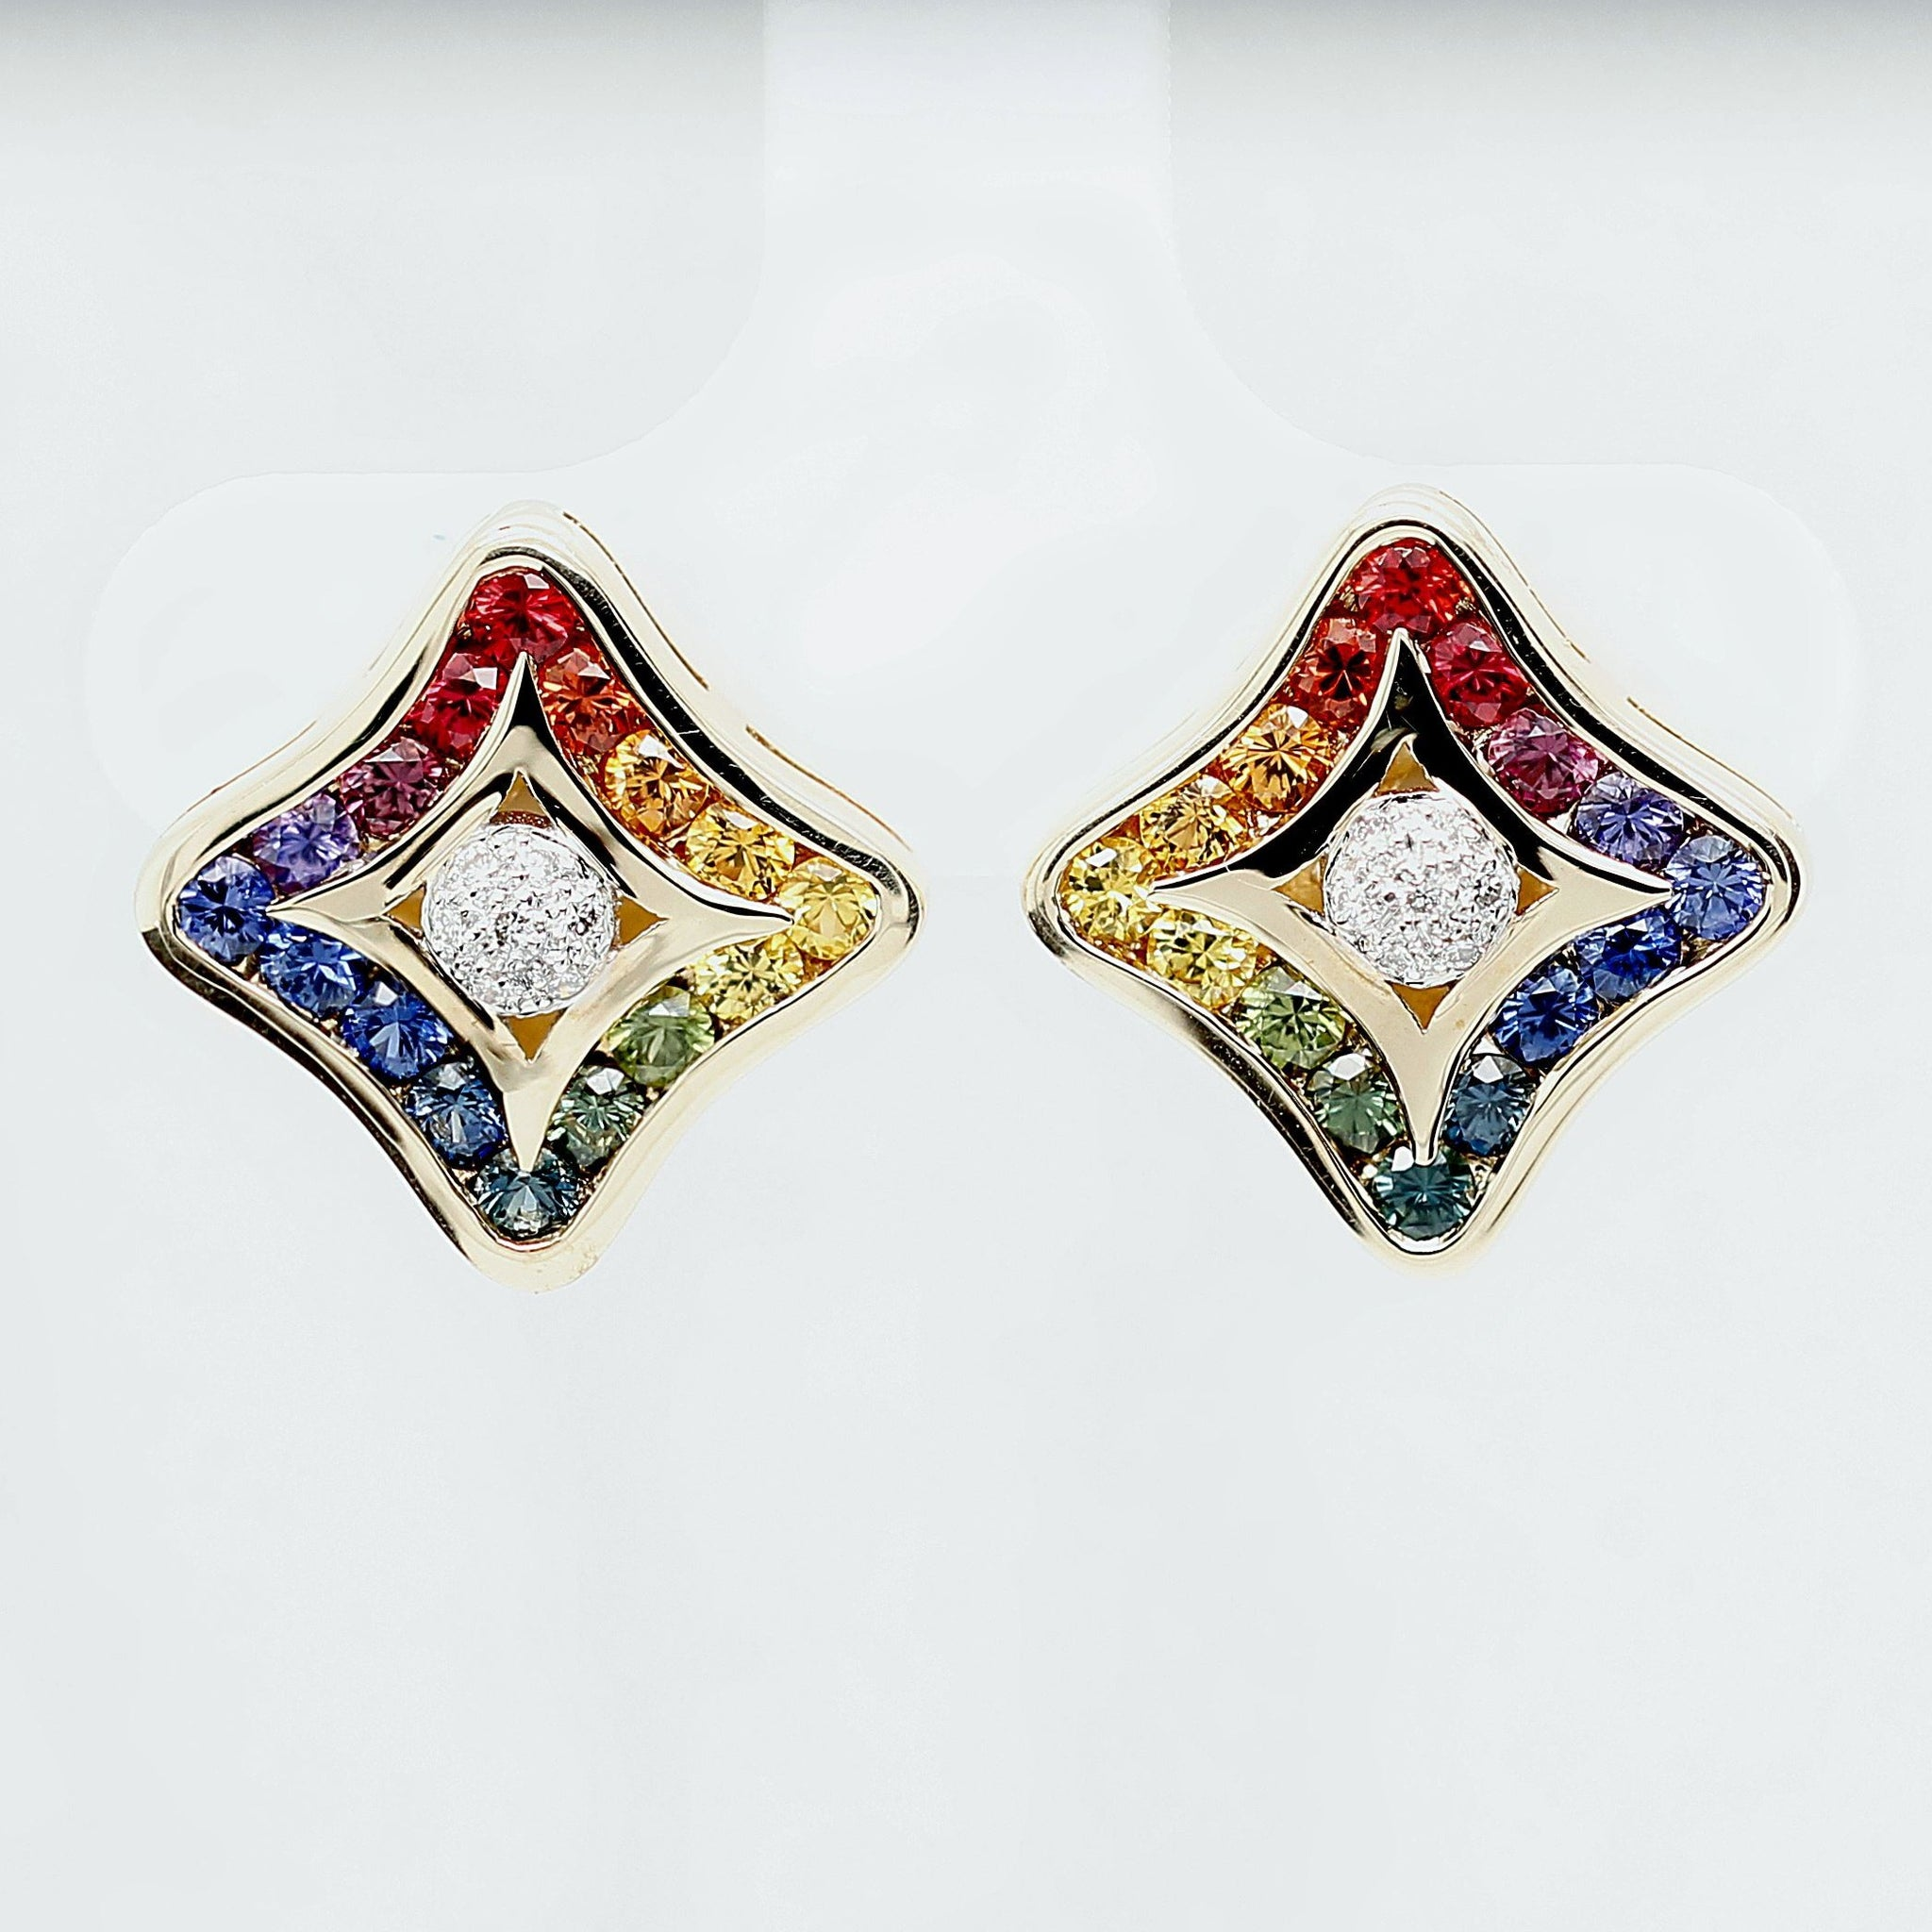 Square shape earrings with top-quality round brilliant cut natural sapphires, rubies, and diamonds